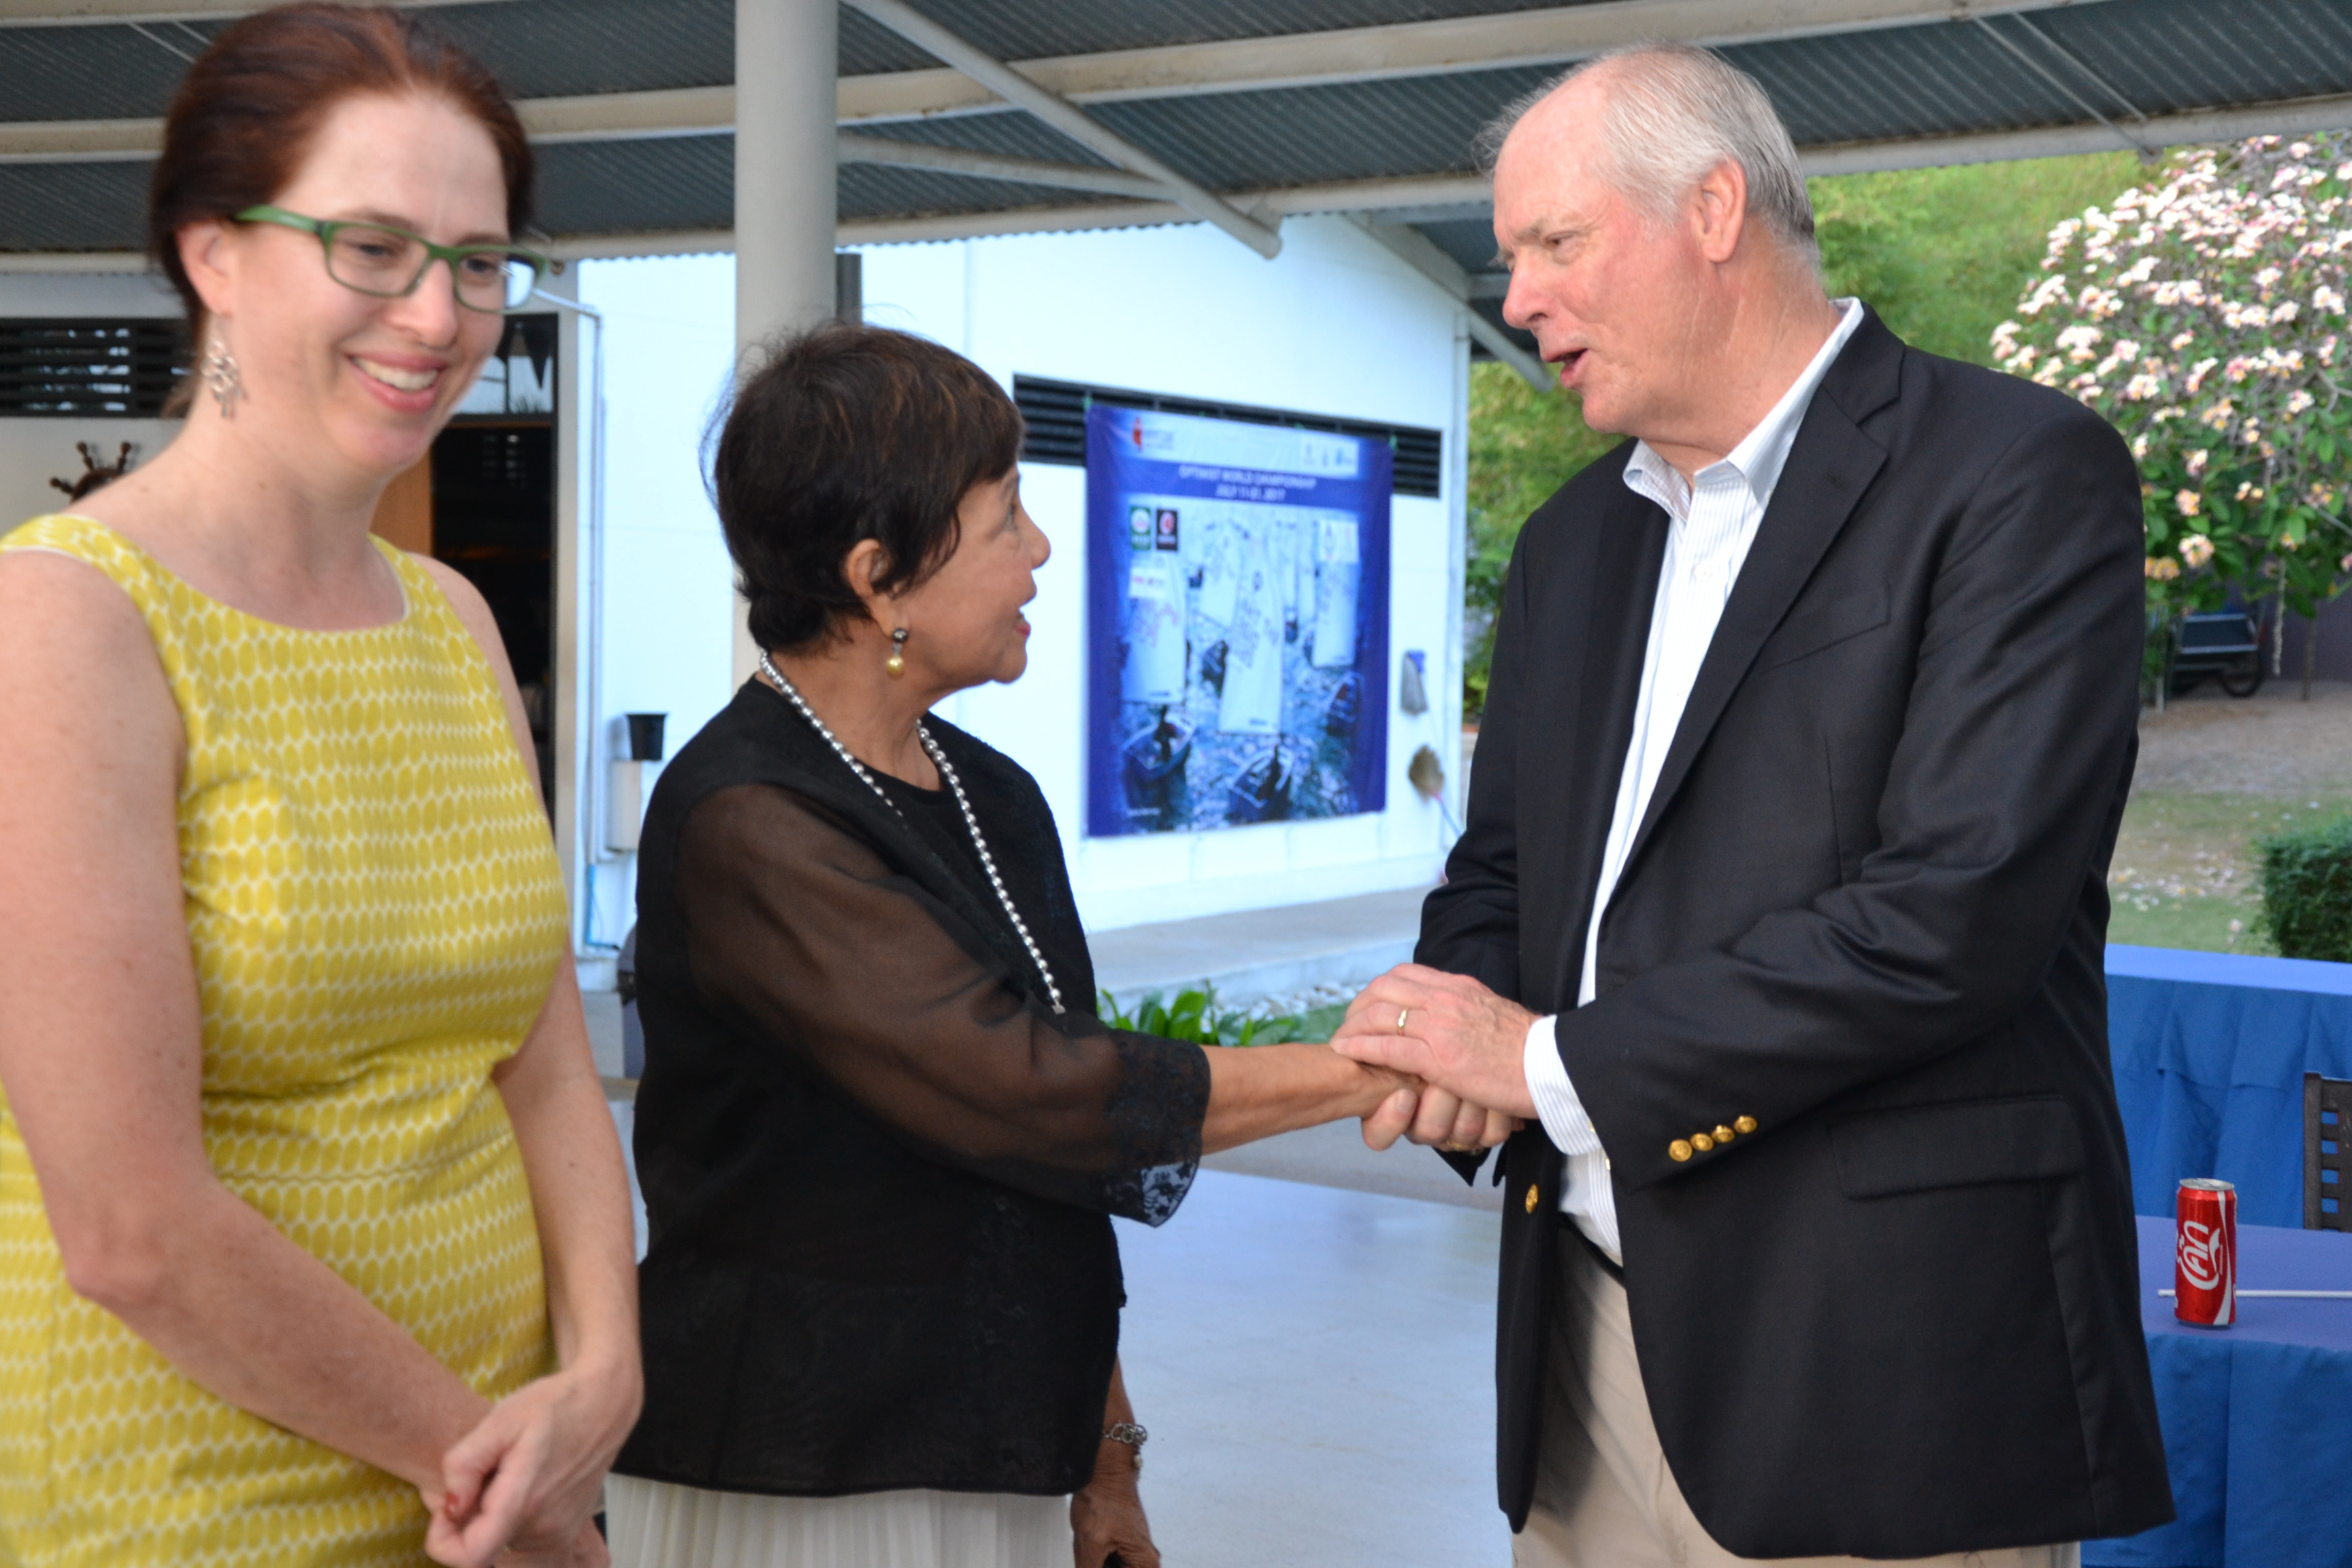 Anne Lee Seshadri, Cultural & Educational Officer of the US Embassy Bangkok seems delighted as Gary Jobson greets Sopin Thappajug.